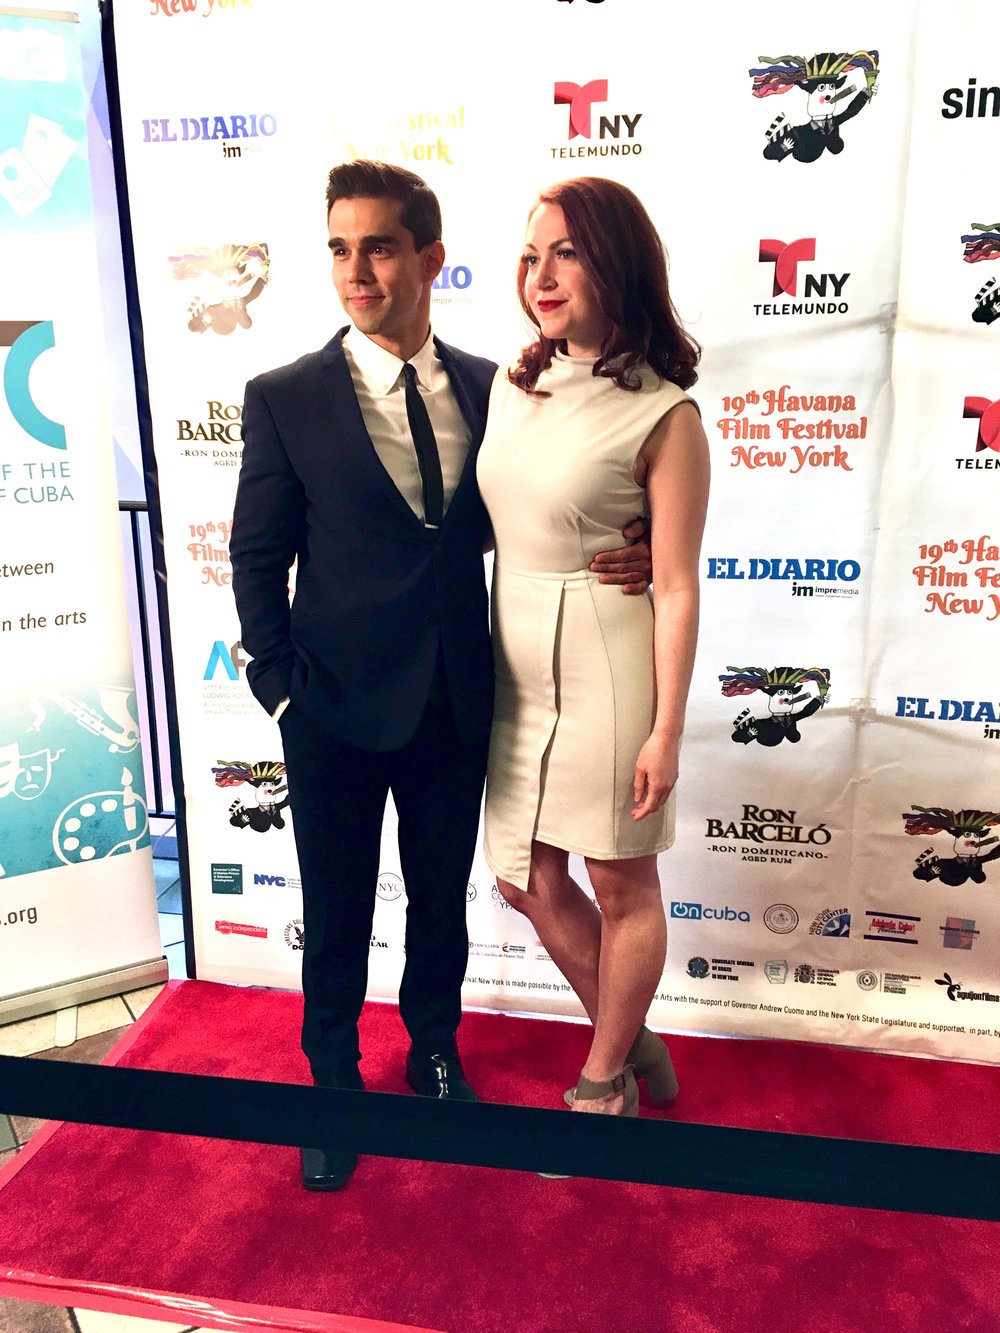 With director and actor  Keelie Sheridan  on the red carpet for the Havana Film Festival New York for the movie  Bx3M